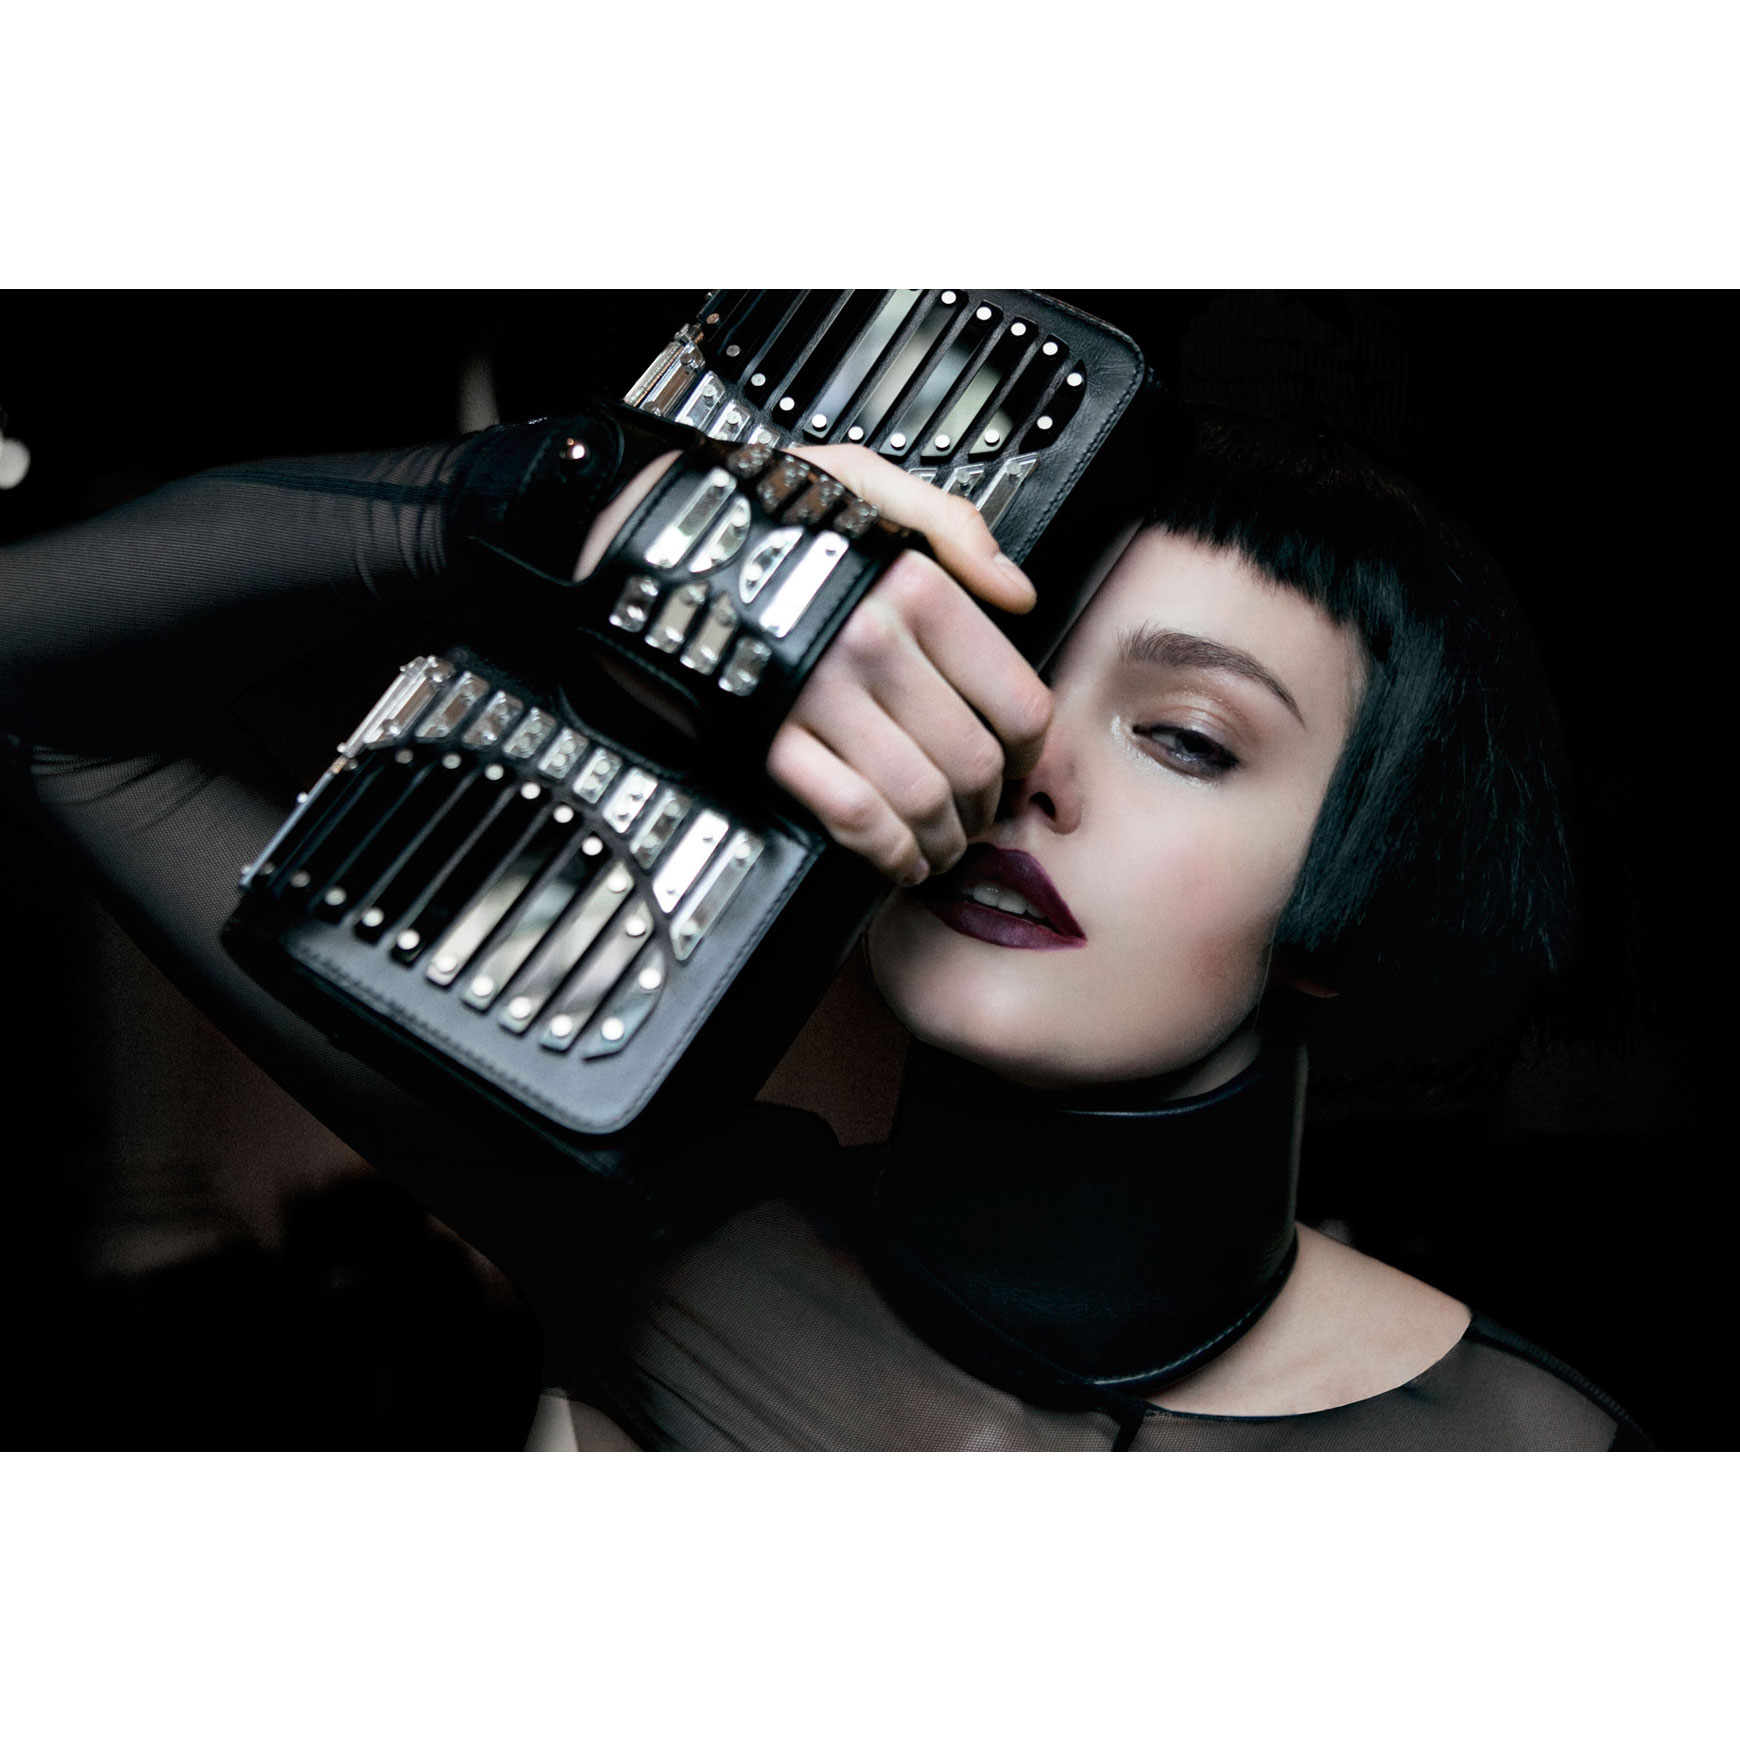 *Astro* clutch – Perrin Paris